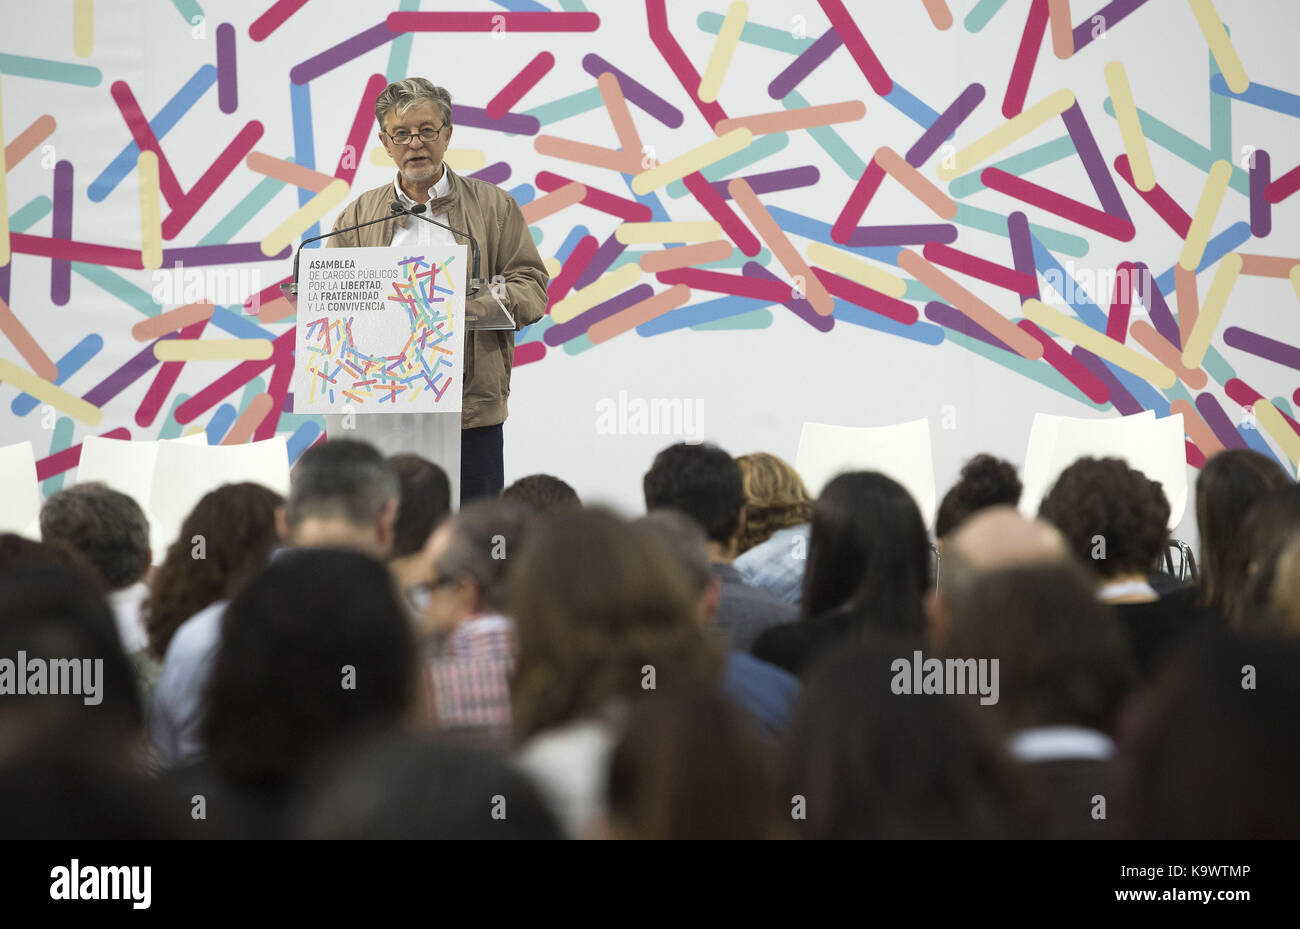 Zaragoza, Spain. 24th Sep, 2017. Zaragoza's Mayor, Pedro Santisteve, delivers a speech at the Public Office Assembly Stock Photo